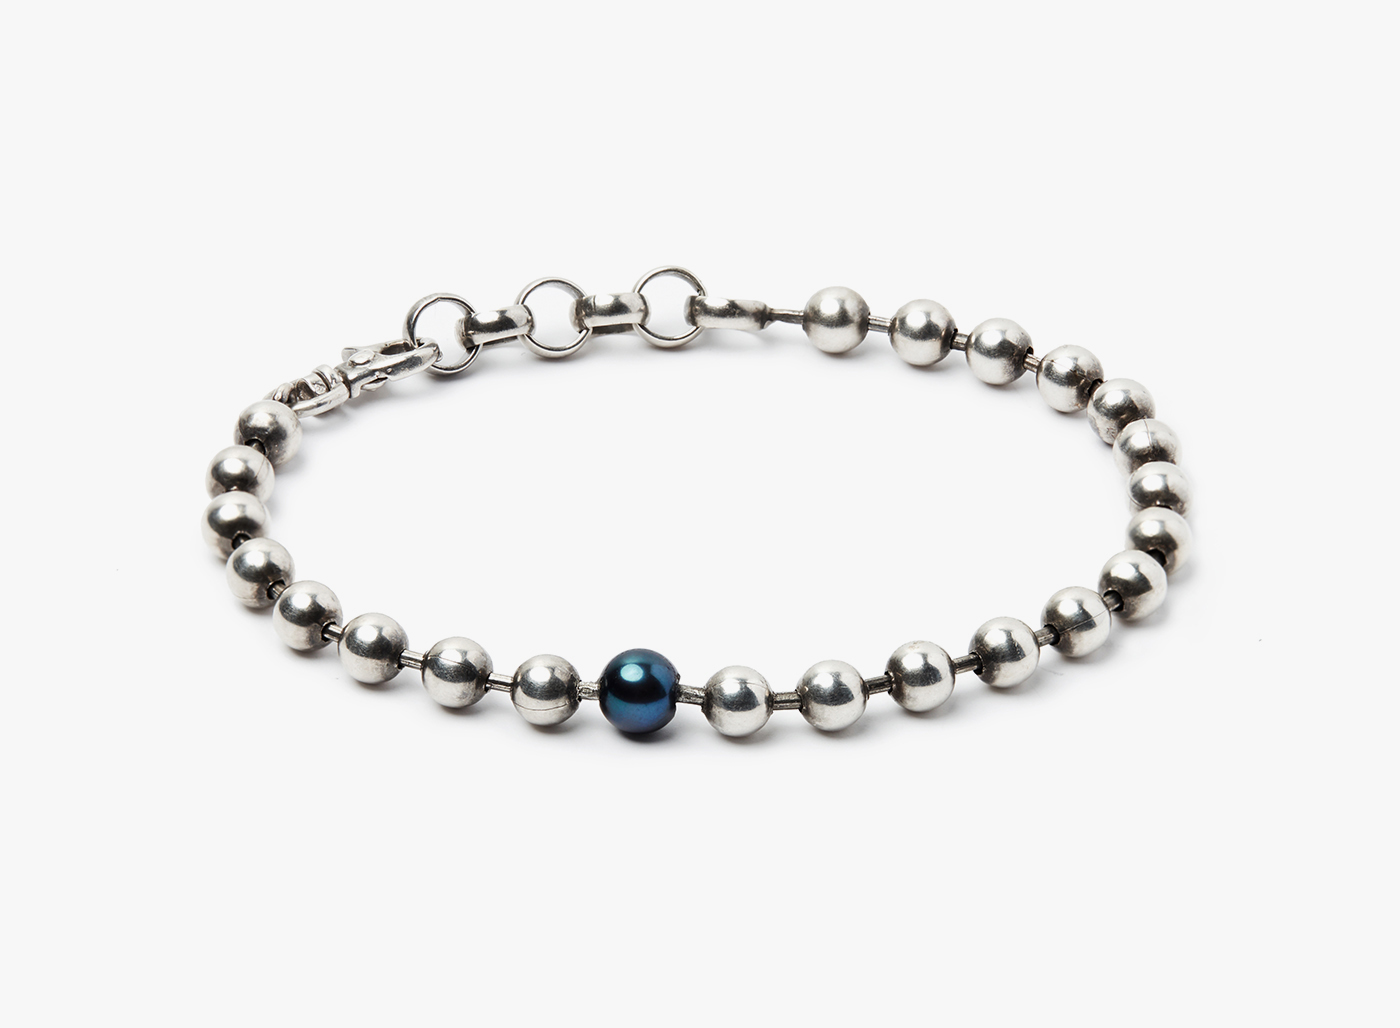 Image of Sterling Silver Ball Chain w/ Single 6mm Black Pearl Bracelet